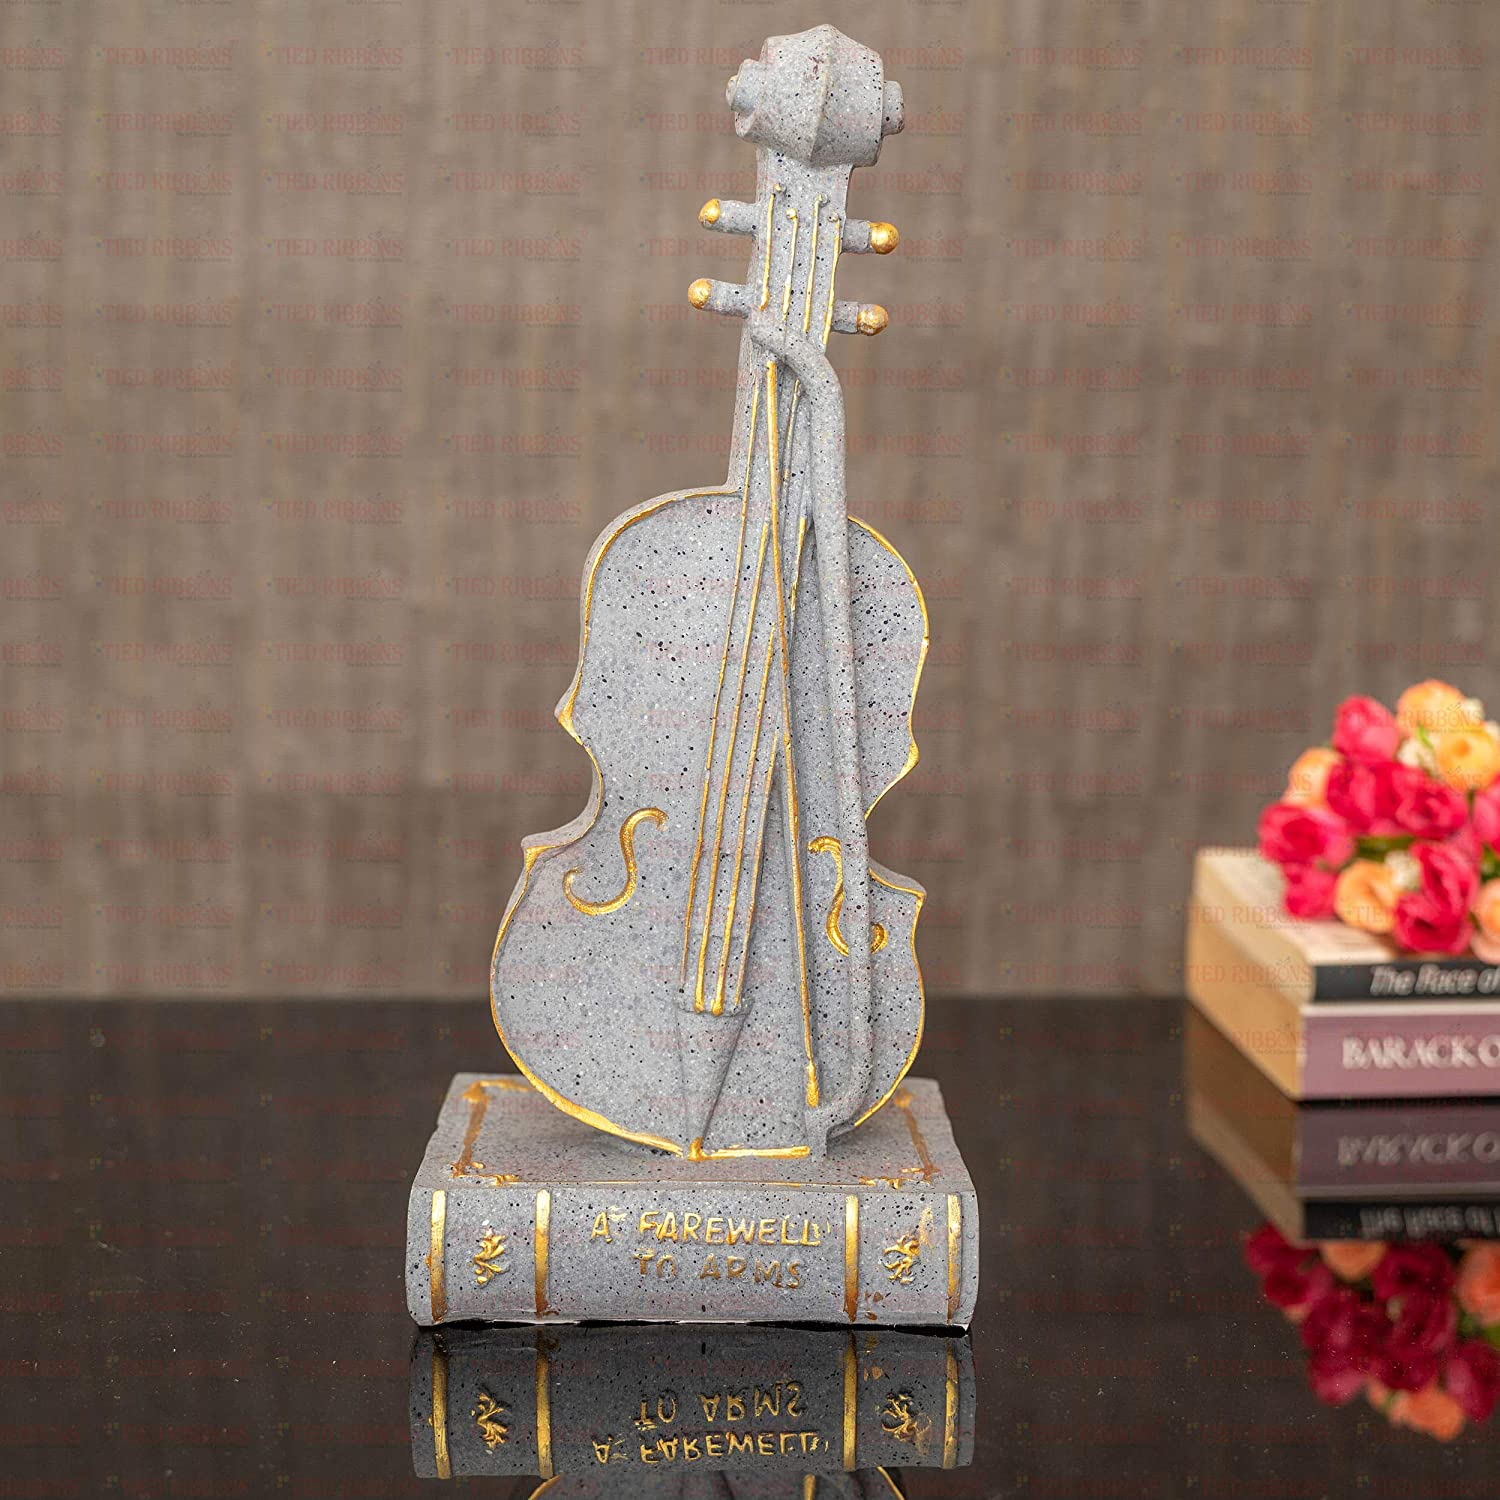 TIED RIBBONS Violin Musical Instrument Handcrafted Decorative Sculpture for Home Decor Wall Shelf Table Office Living Room Decoration Item (27.5 cm X 12 cm)